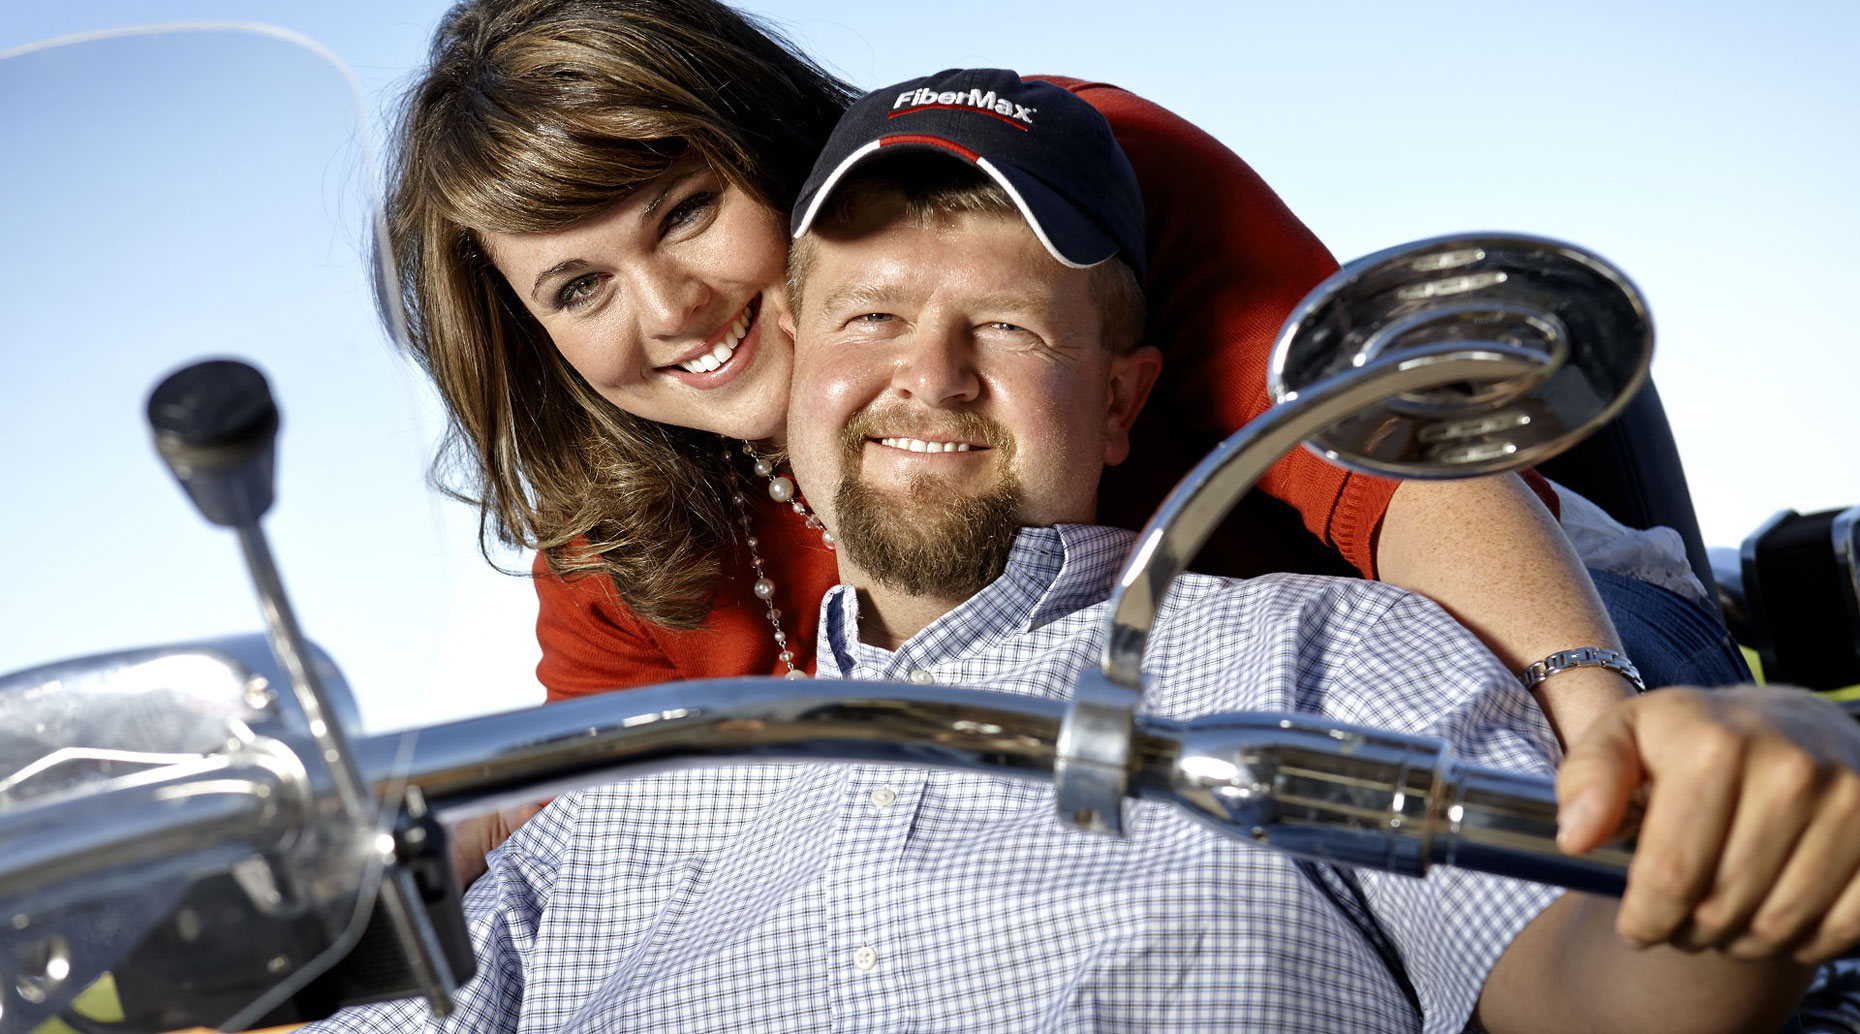 Newlywed couple on a motorcycle.